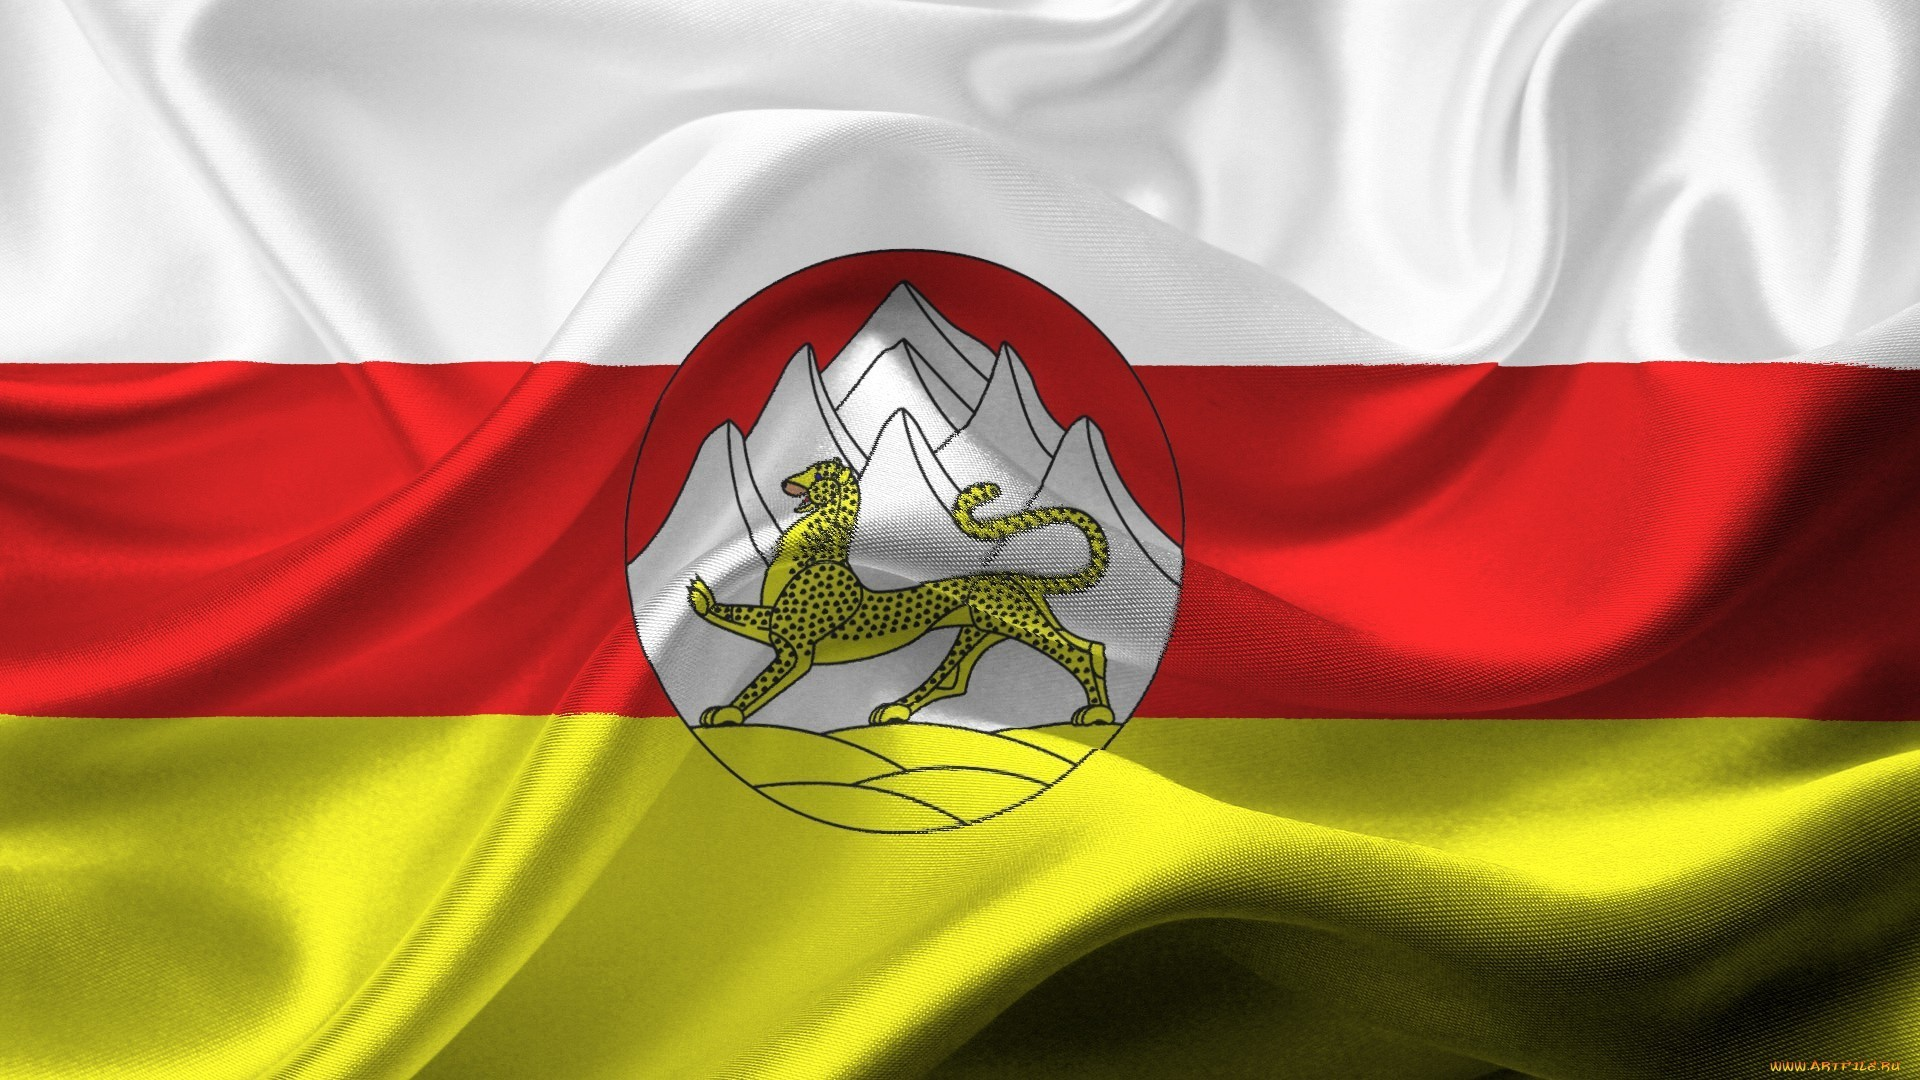 1920x1080 Flag of South Ossetia wallpaper